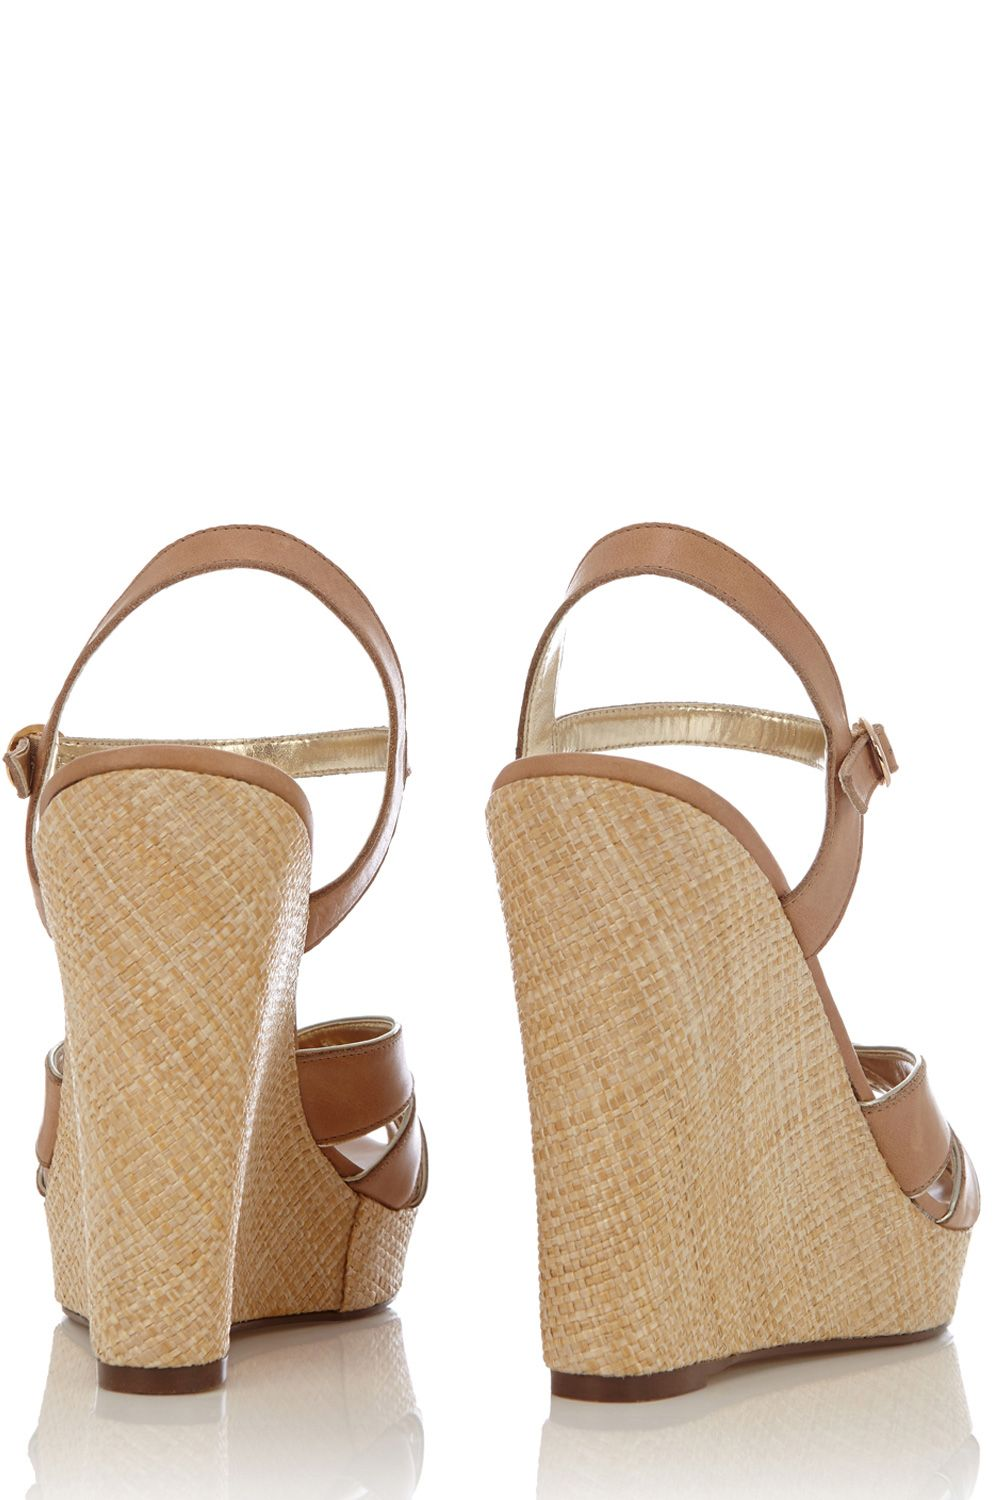 Tara tea dance textured wedges